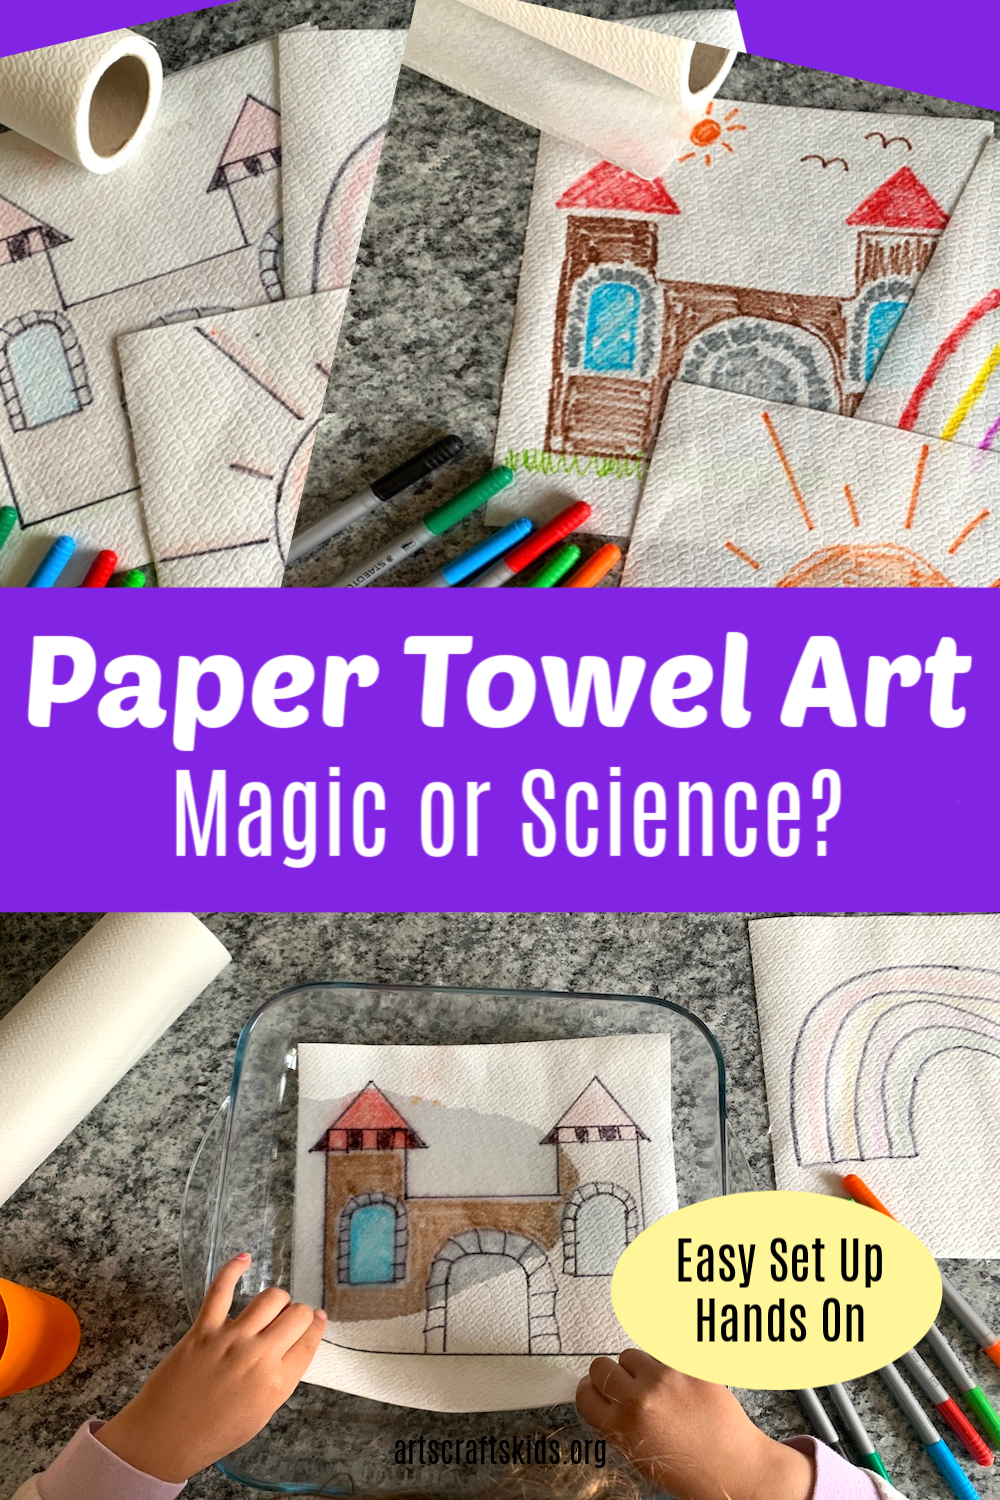 Paper Towel Art - Easy to set up hands on activity for kids